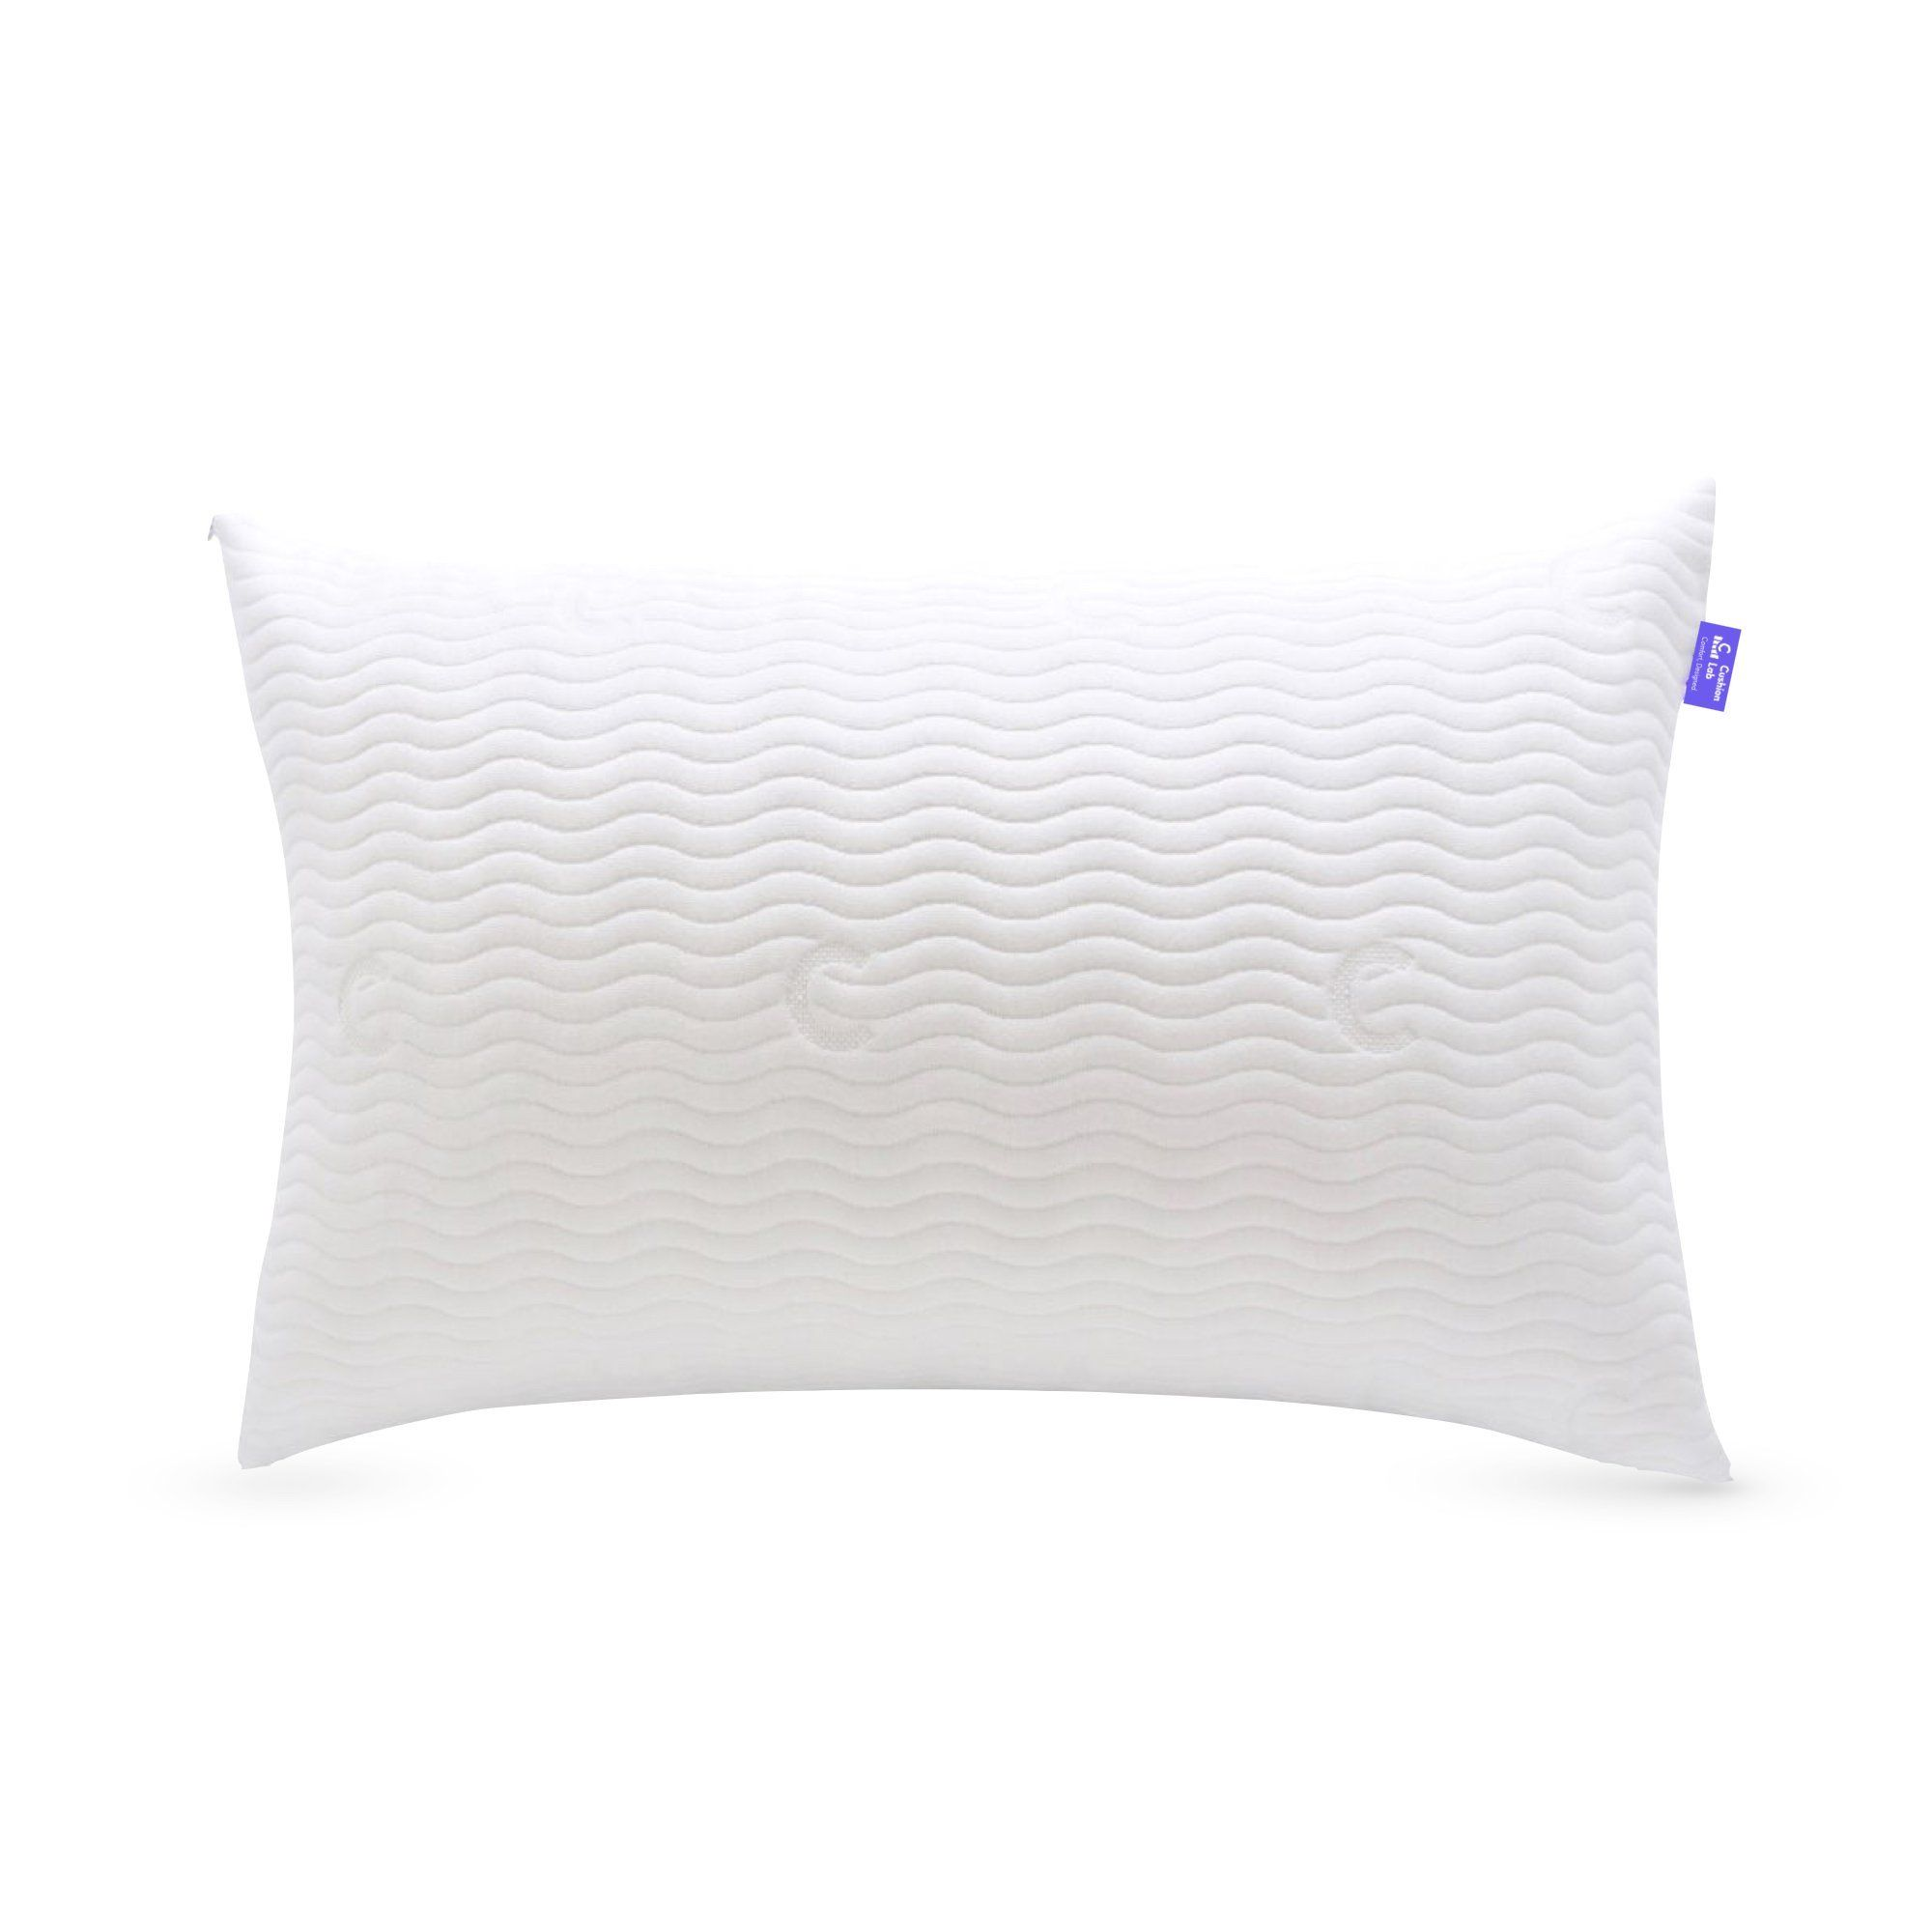 https www goodhousekeeping com home products pillow reviews g30627120 best pillows for side sleepers